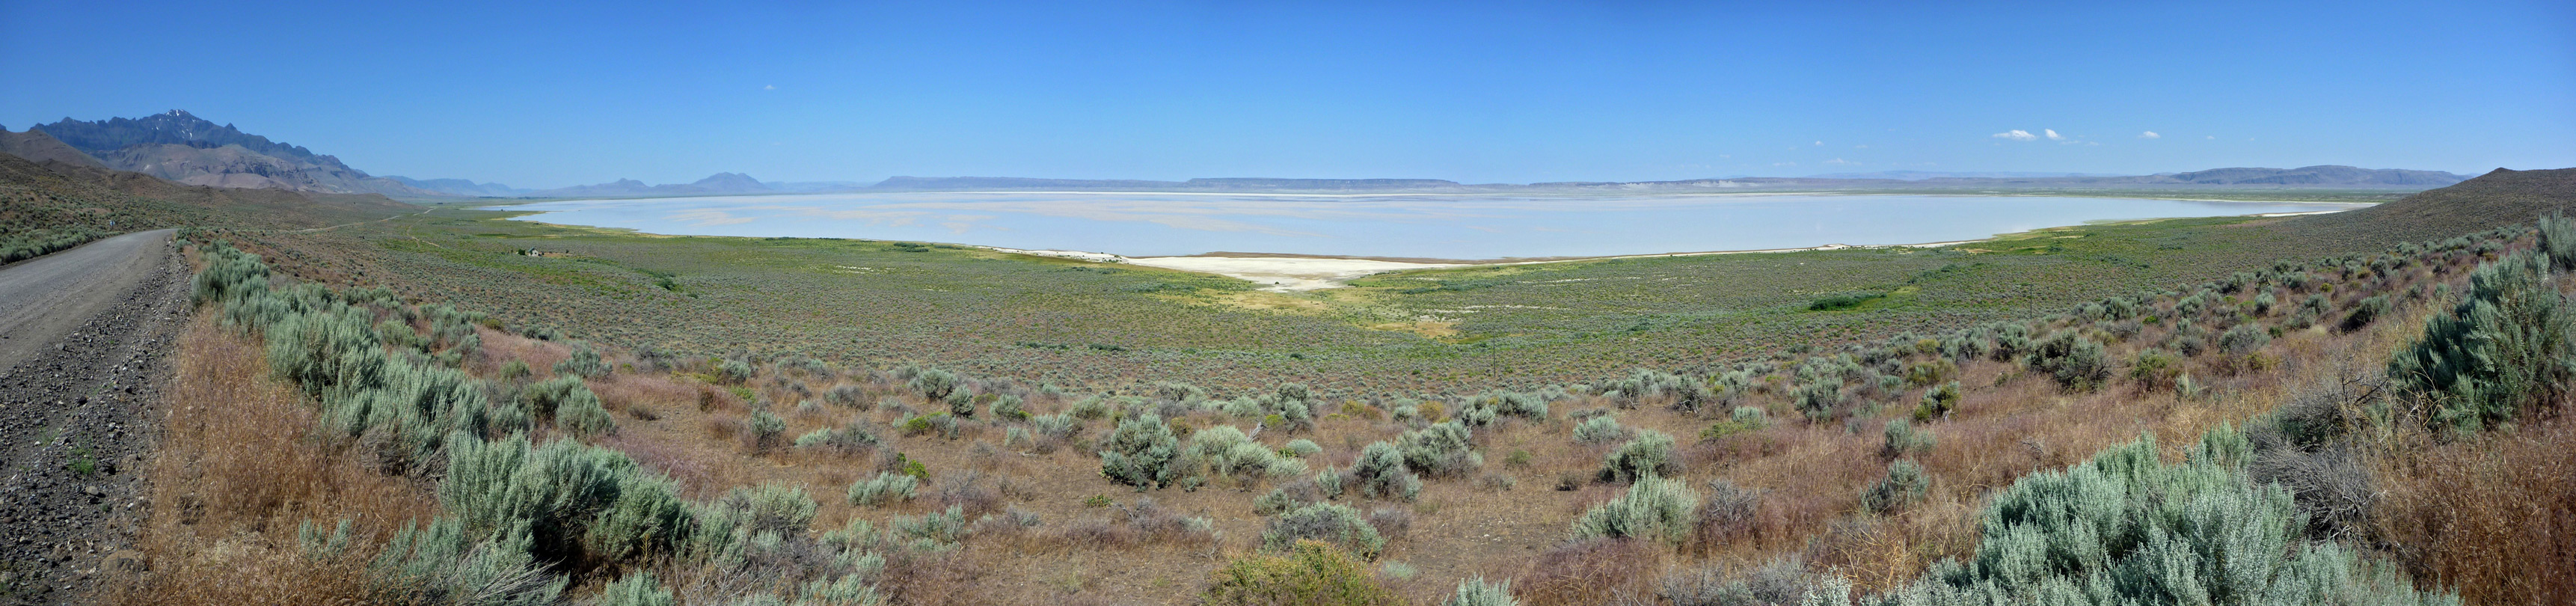 Shallow water on the Alvord Desert